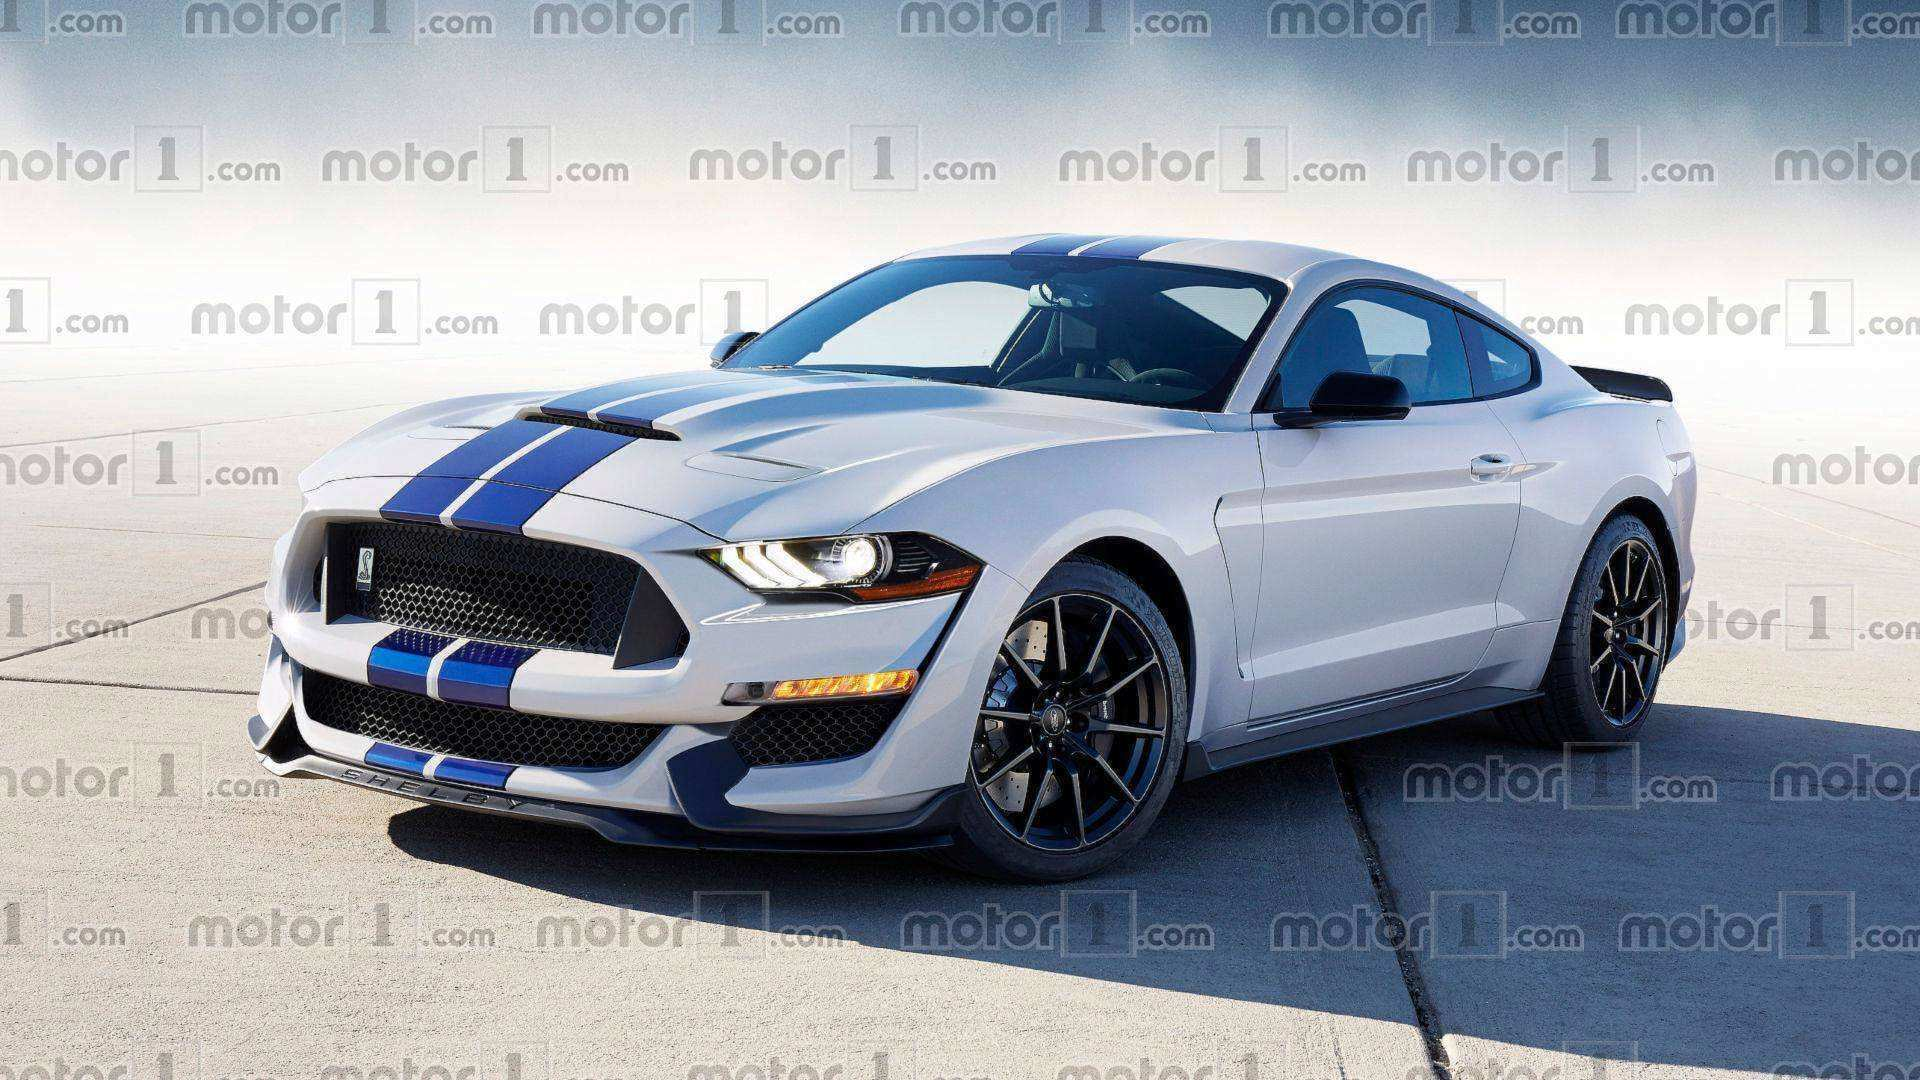 56 New Ford Gt500 Shelby 2020 Style